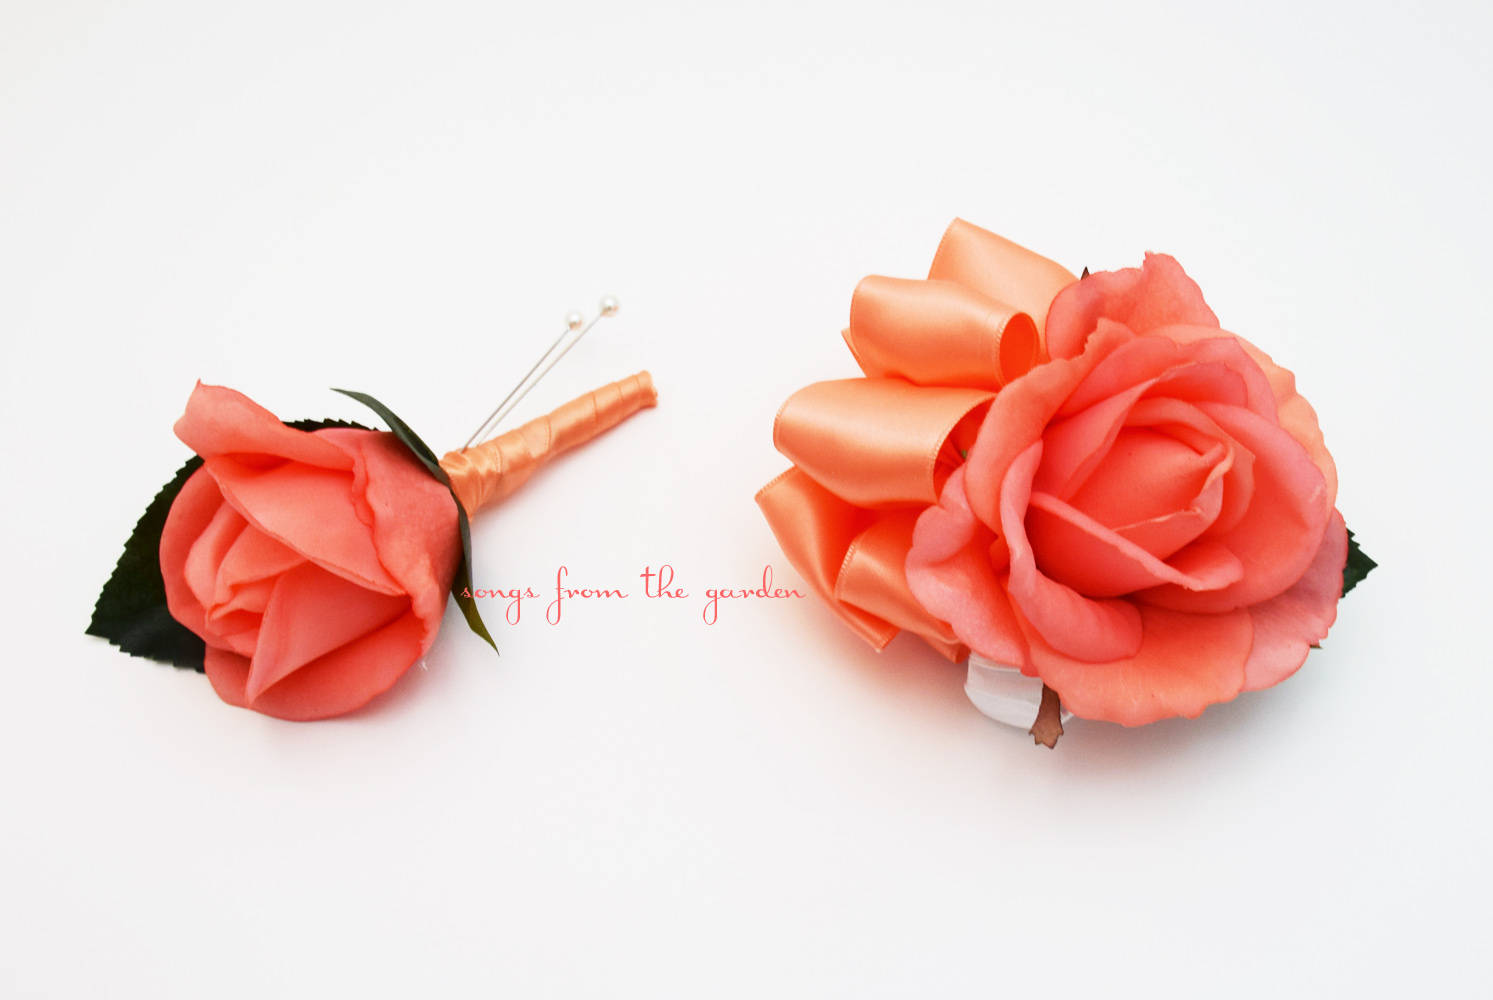 Coral Real Touch Rose Boutonniere and Corsage - Wedding Prom Homecoming Corsage or Boutonniere